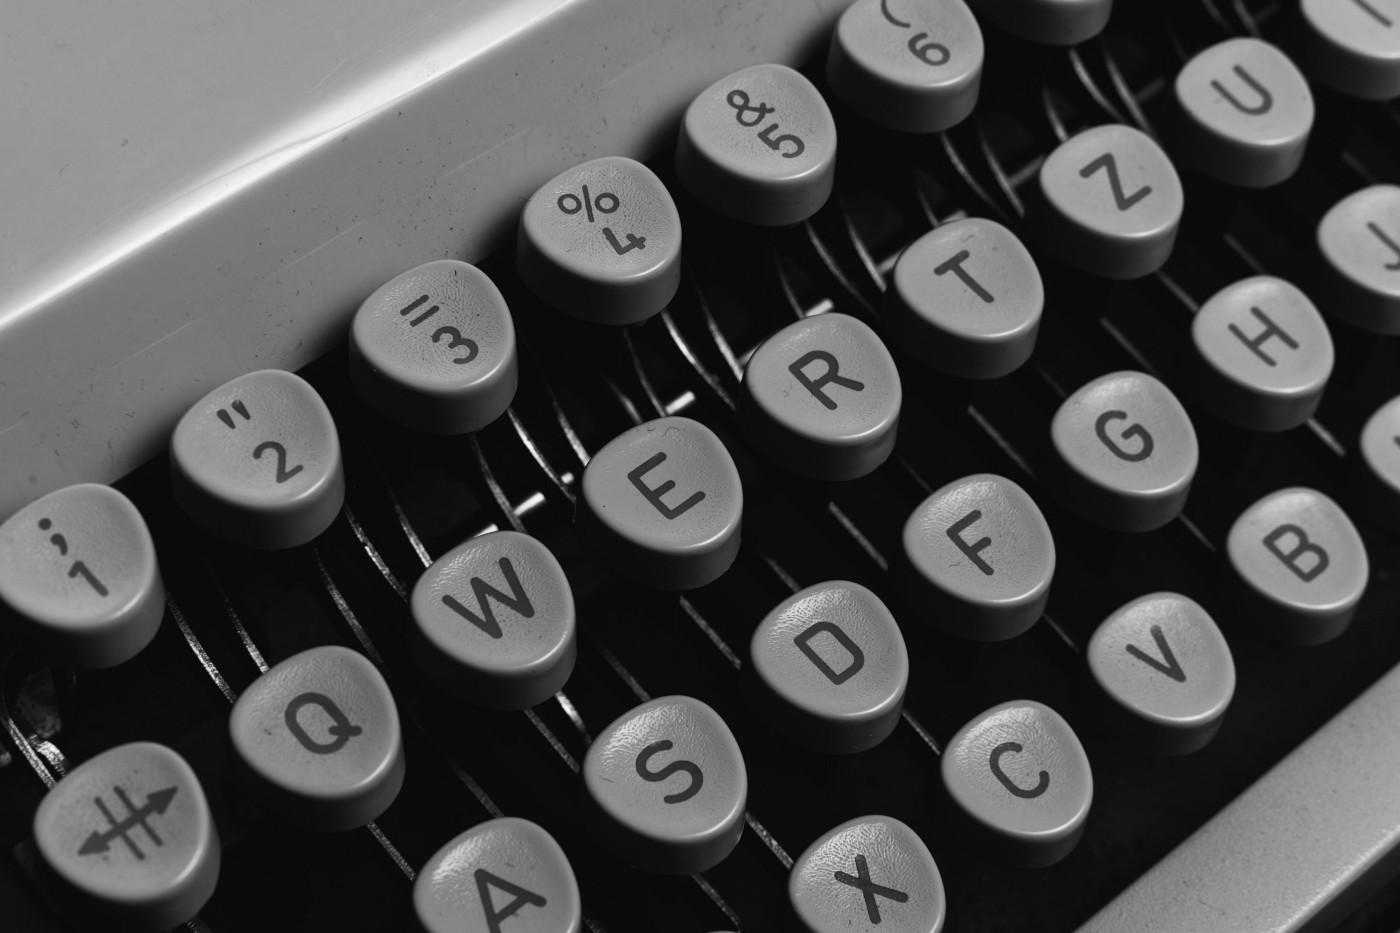 Black and white typewriter keyboard.